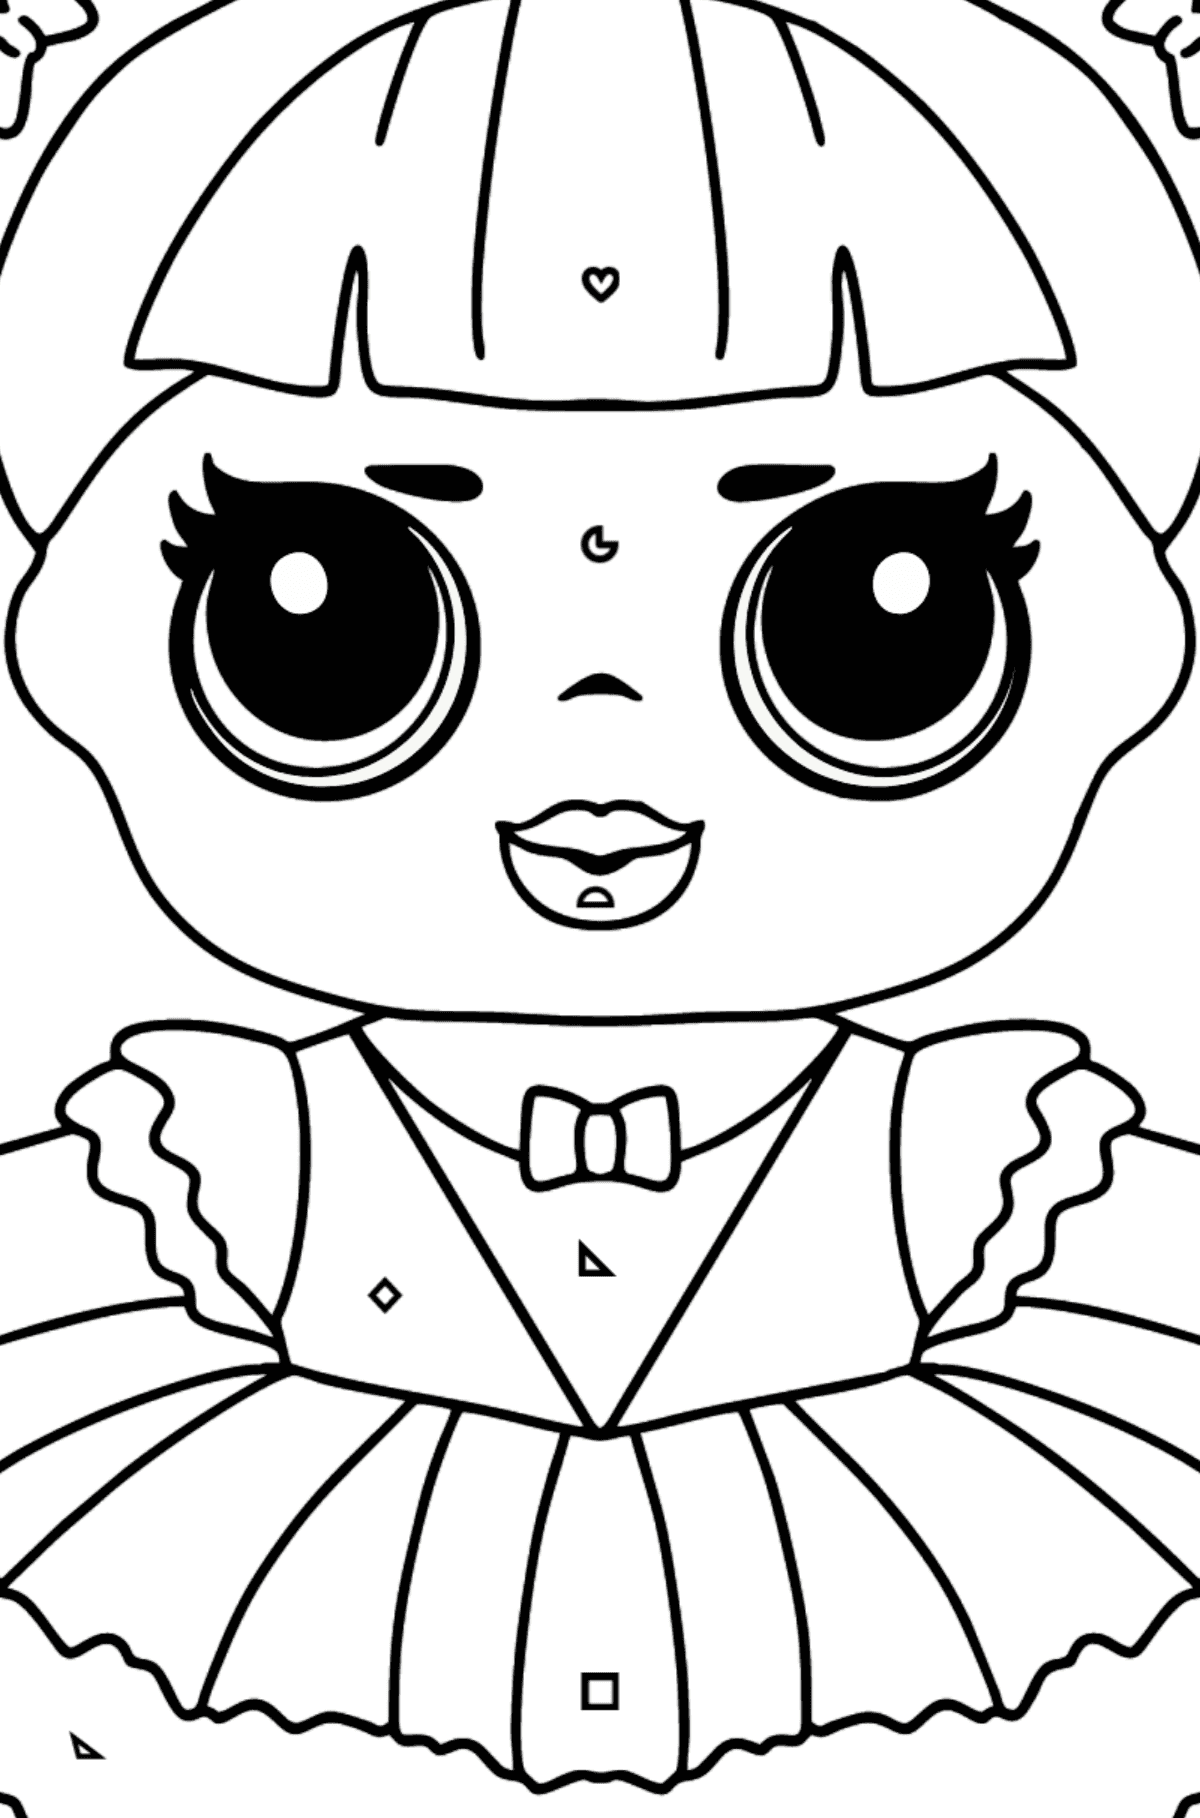 L.O.L. Surprise Doll Center Stage - Coloring by Geometric Shapes for Kids